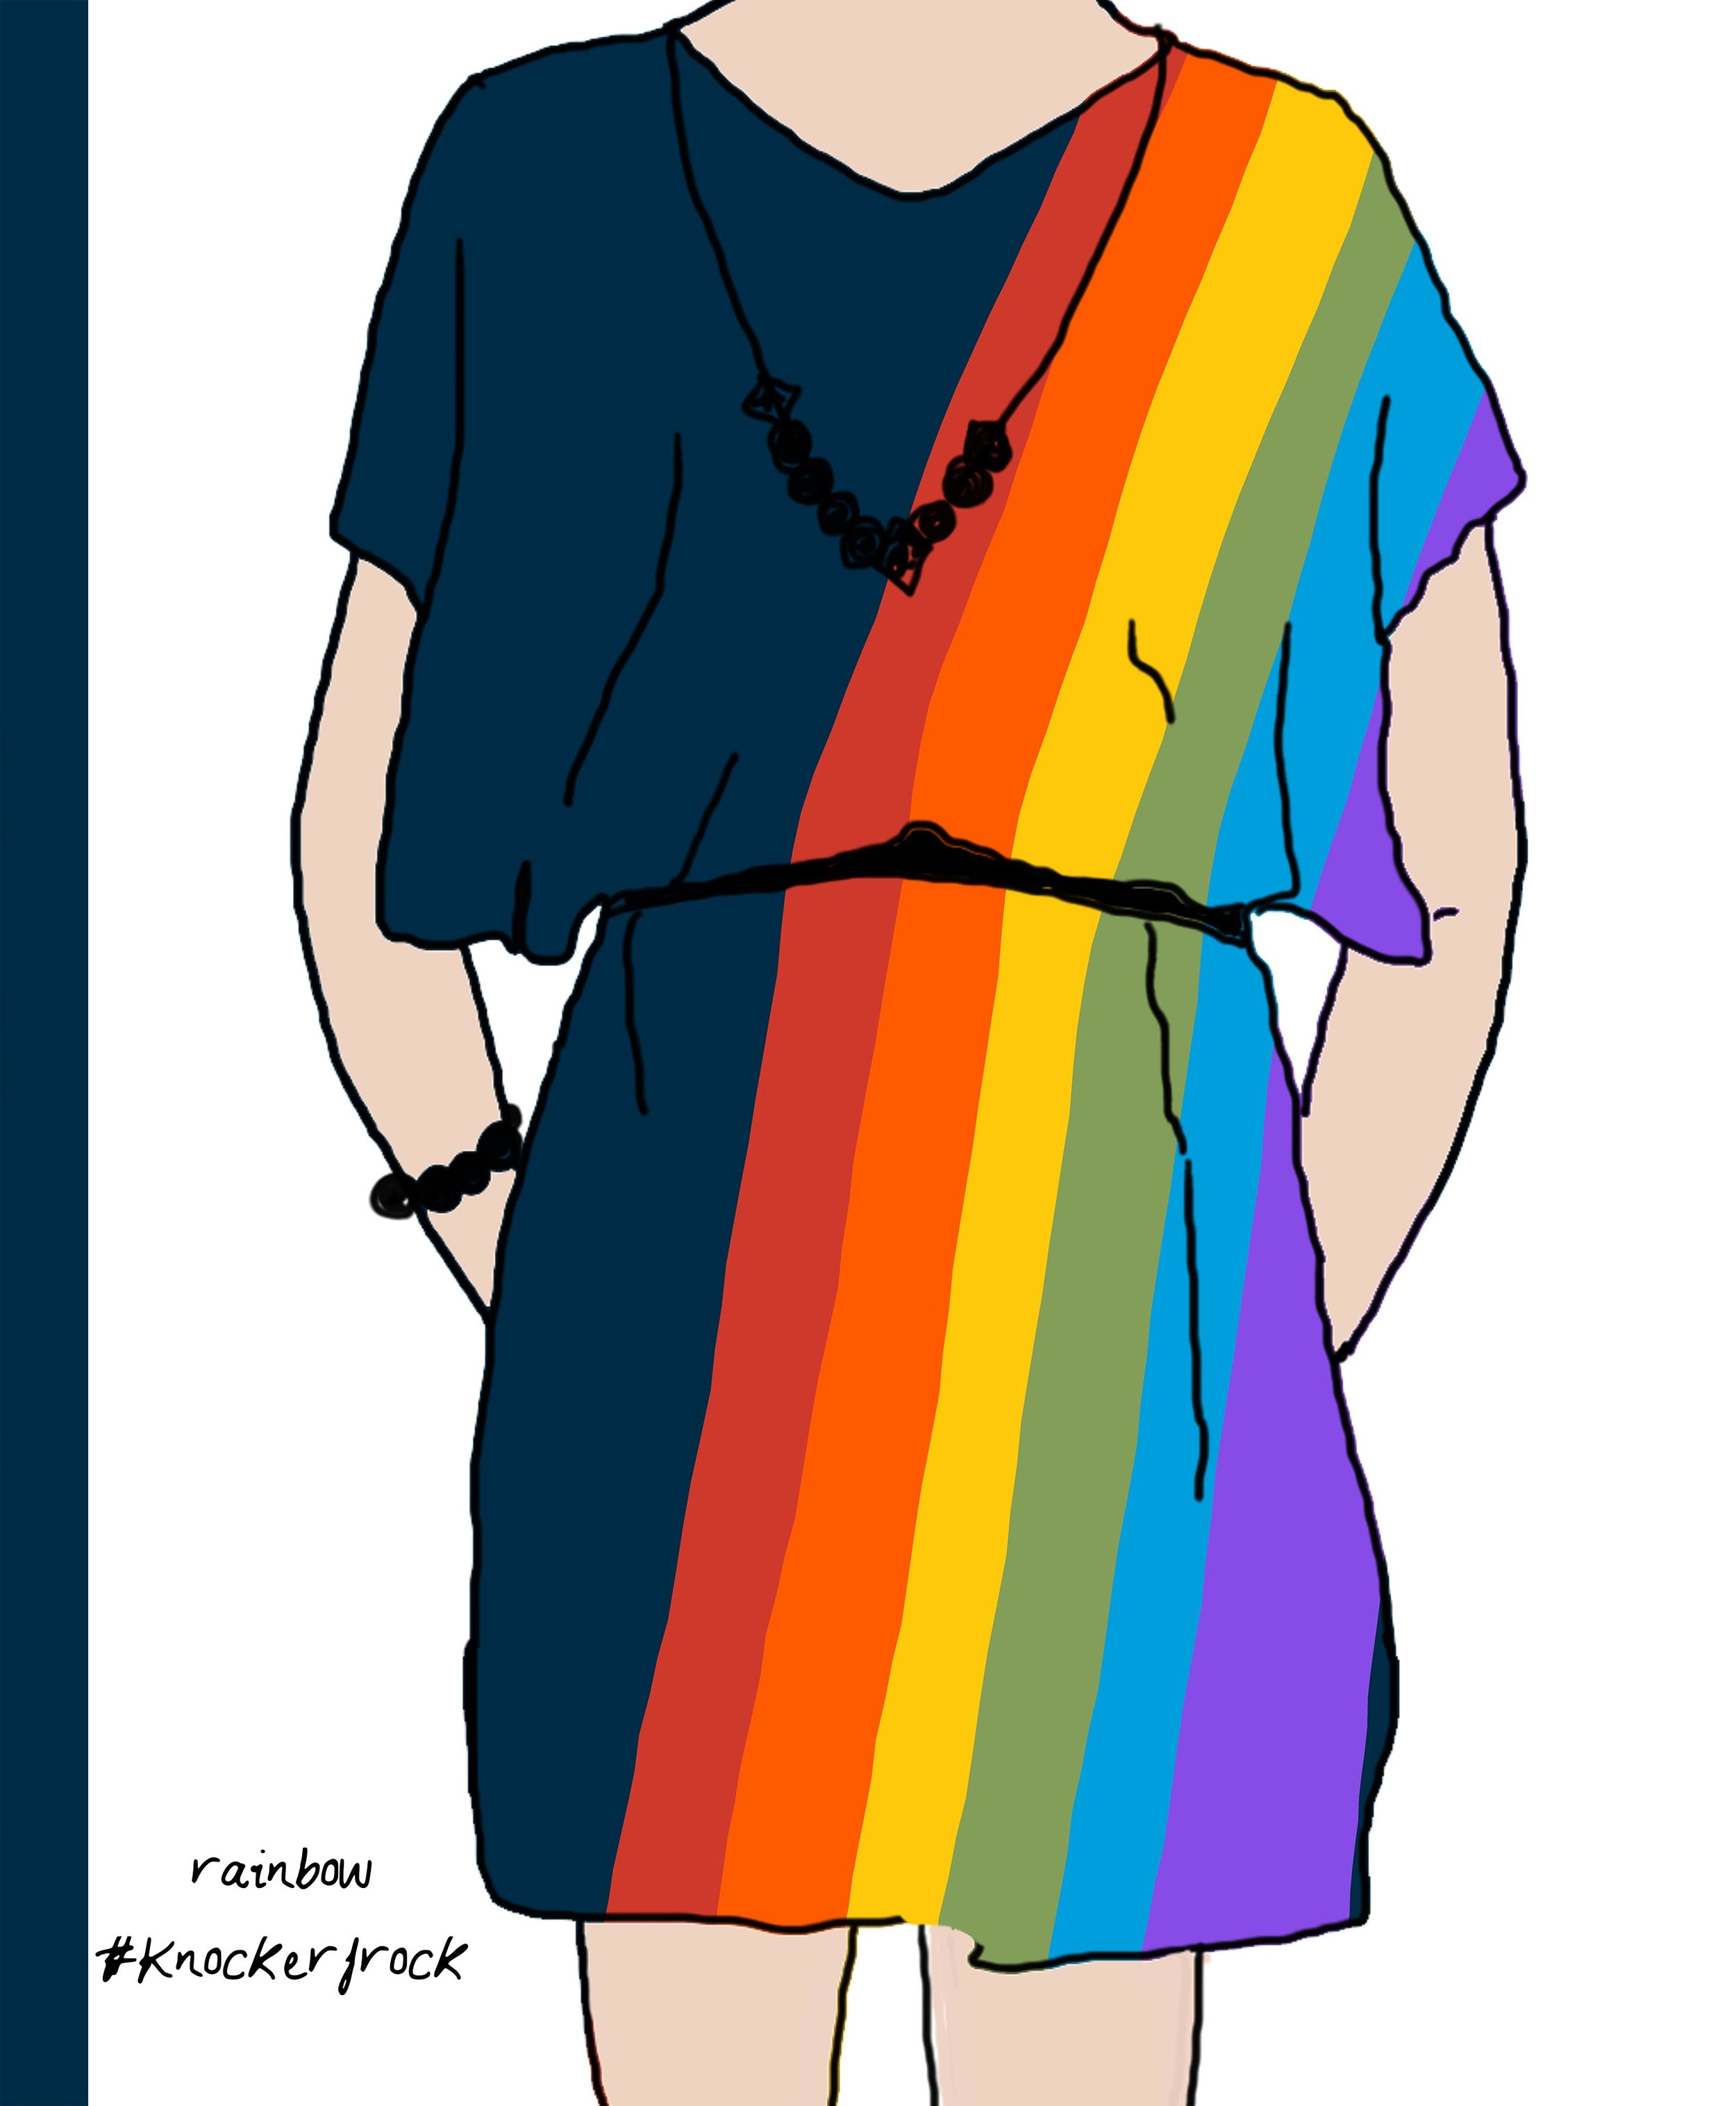 rainbow knockerfrock.jpg